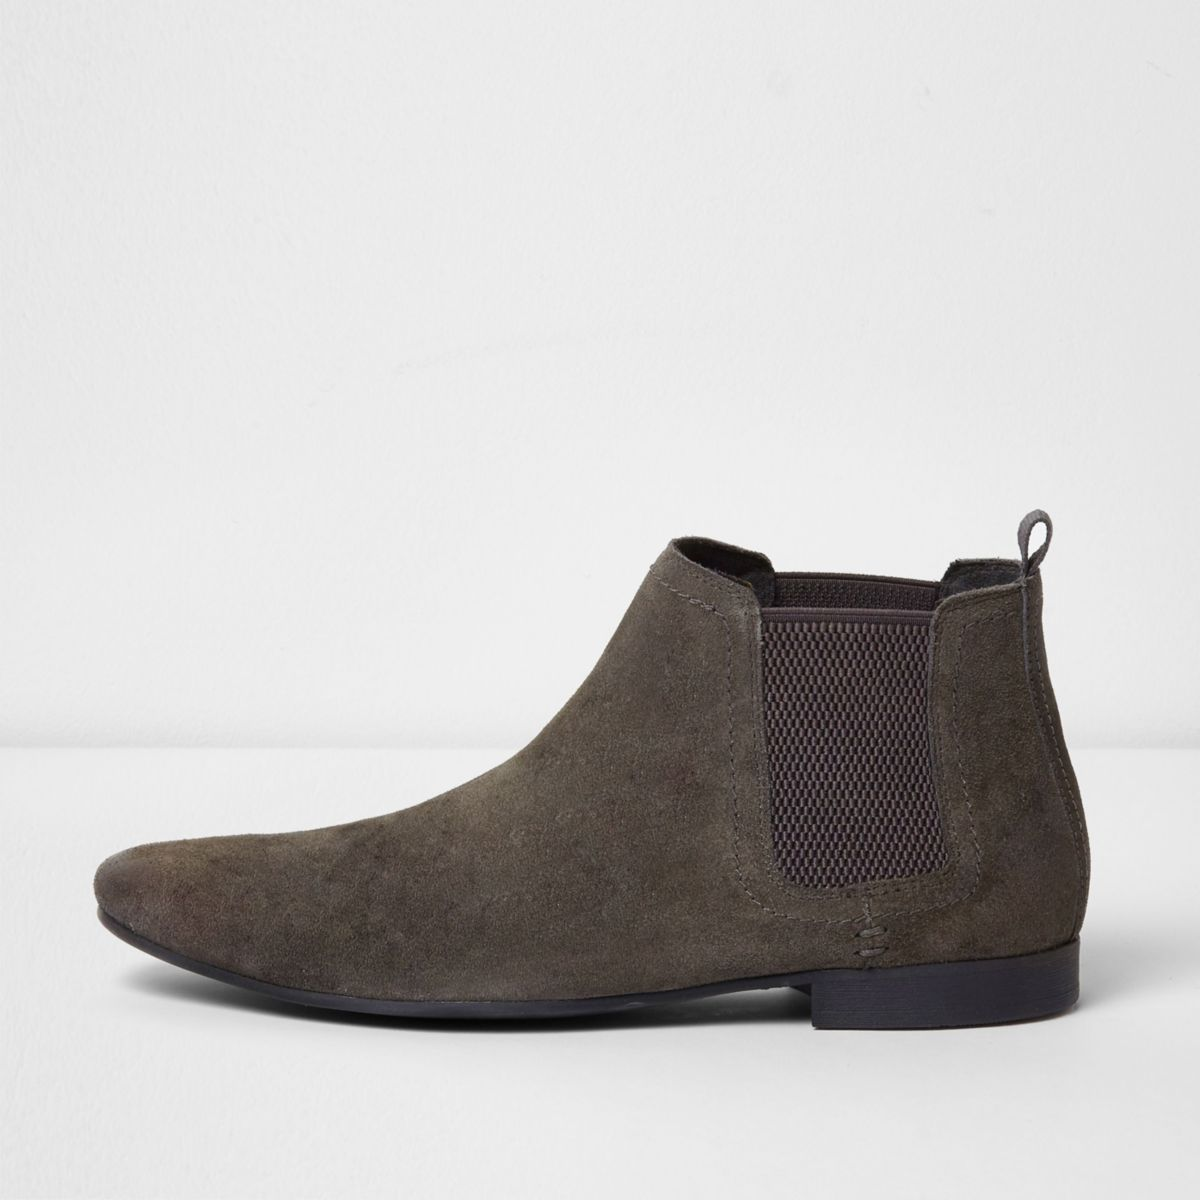 Grey suede chelsea boots